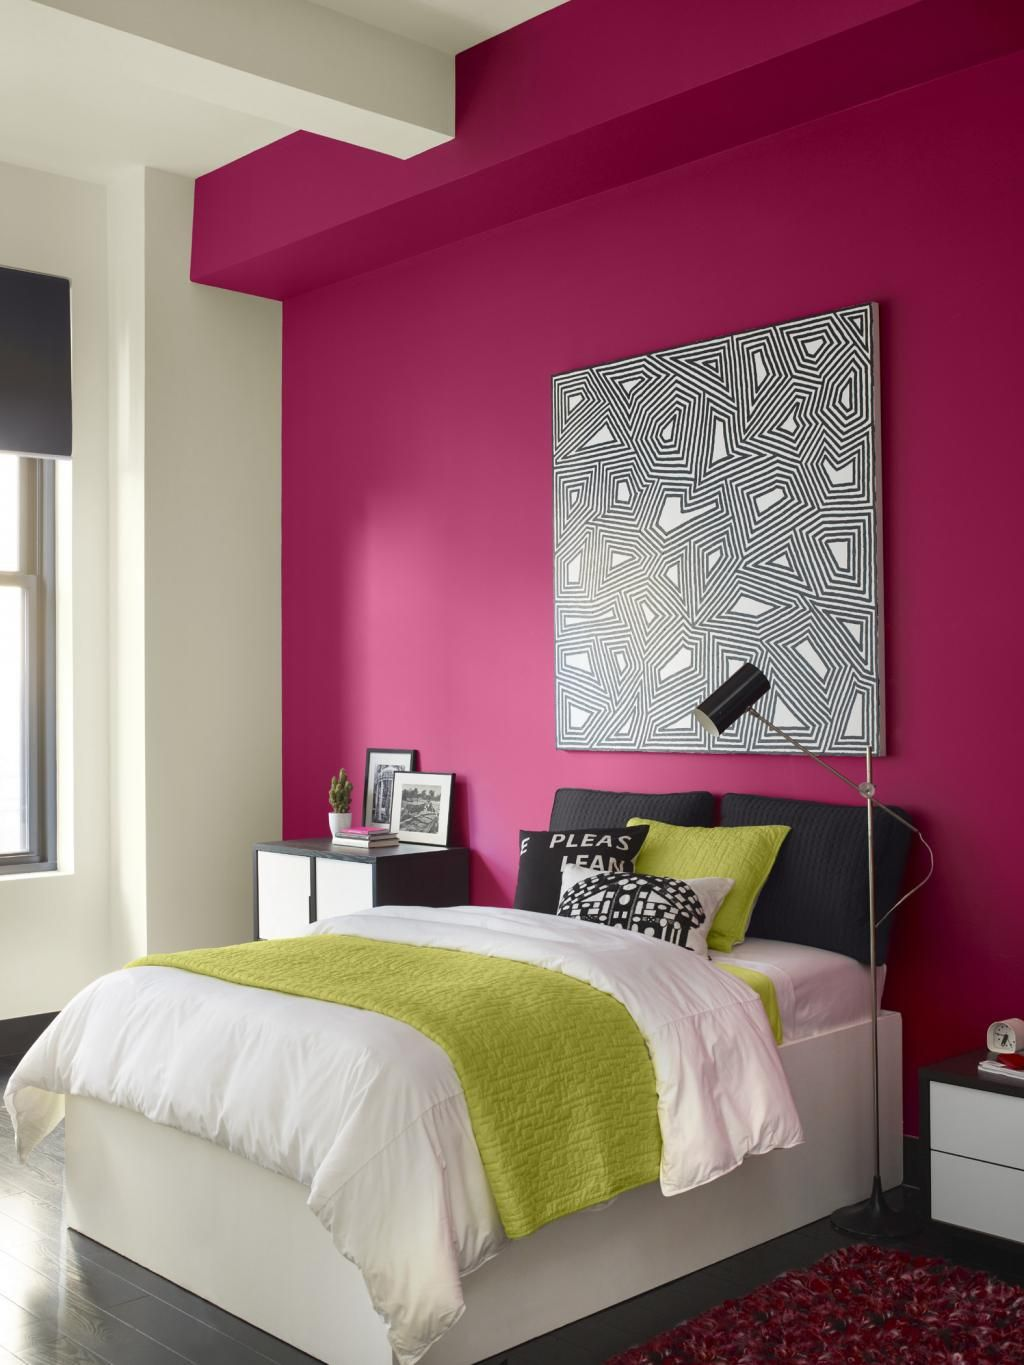 Black White Pink Bedroom Room Color Combination Bedroom Color Combination Bedroom Wall Colors